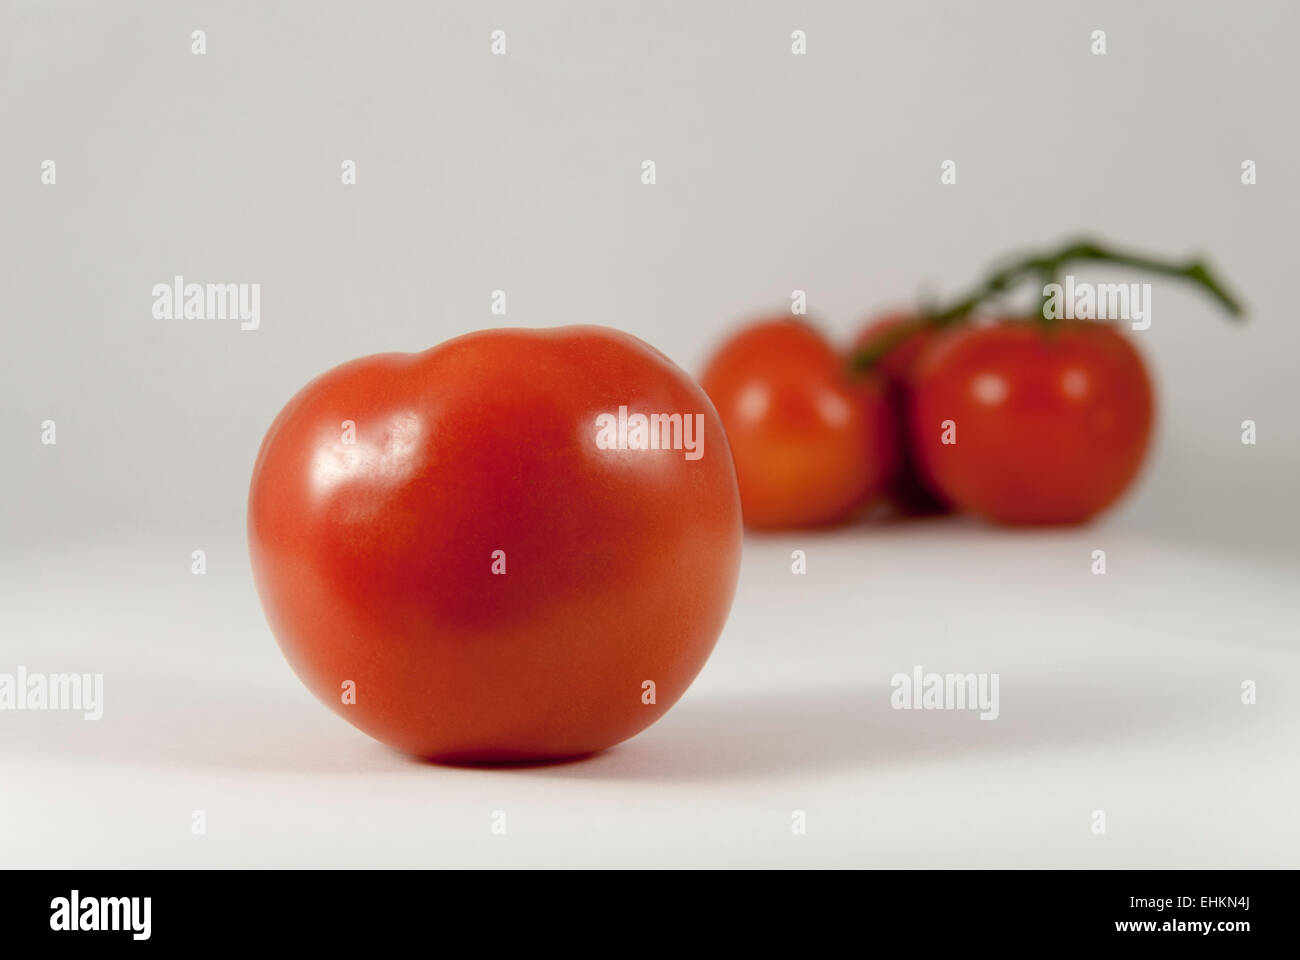 Single ripe plump red tomato backed by blurred grouping of three tomatoes with white background - Stock Image